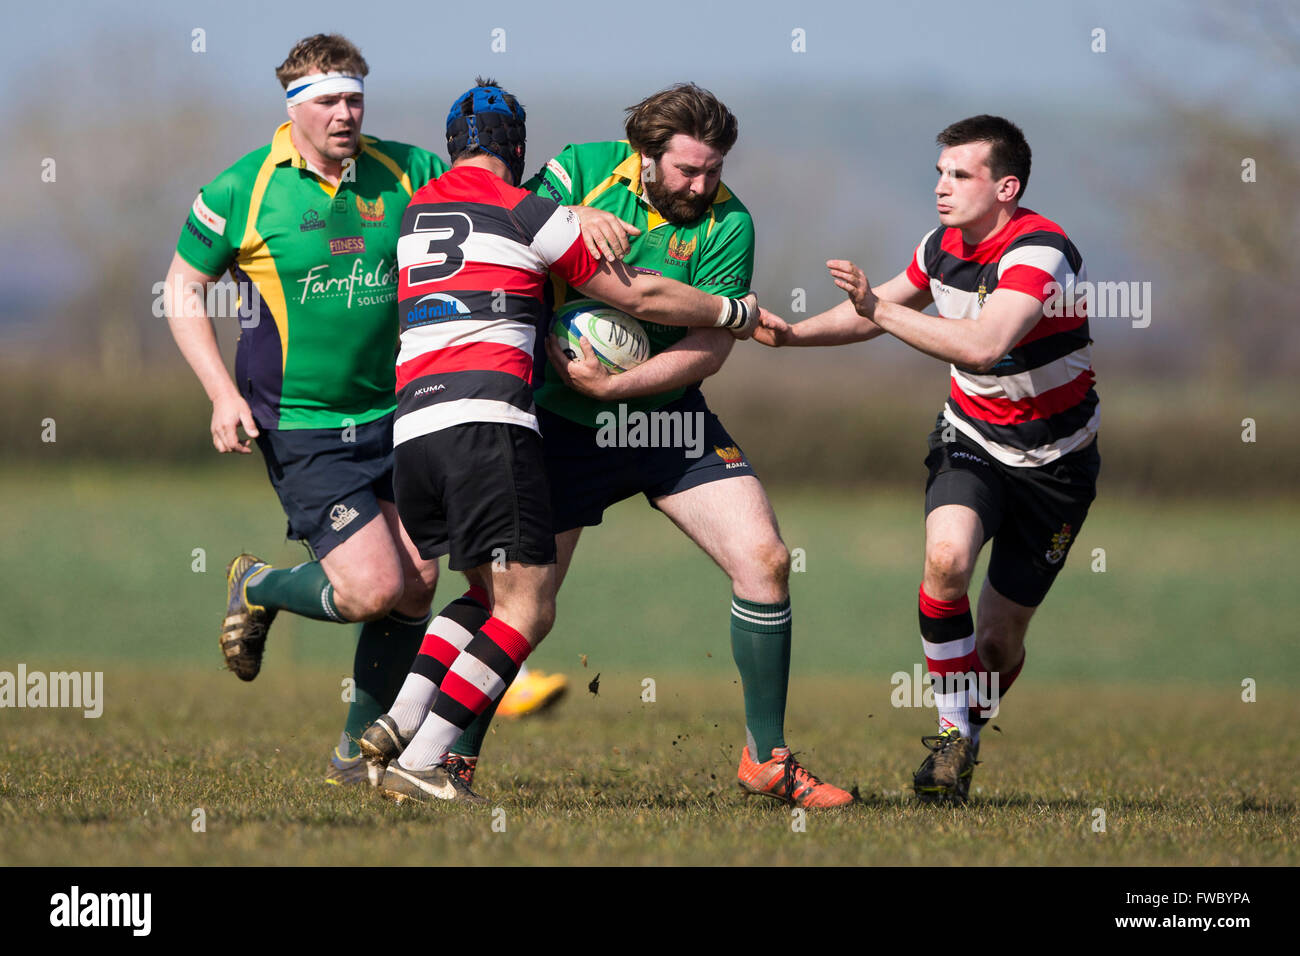 NDRFC 1st XV versus Frome RFC 1st XV,  Thomas Gale of North Dorset RFC in action. - Stock Image